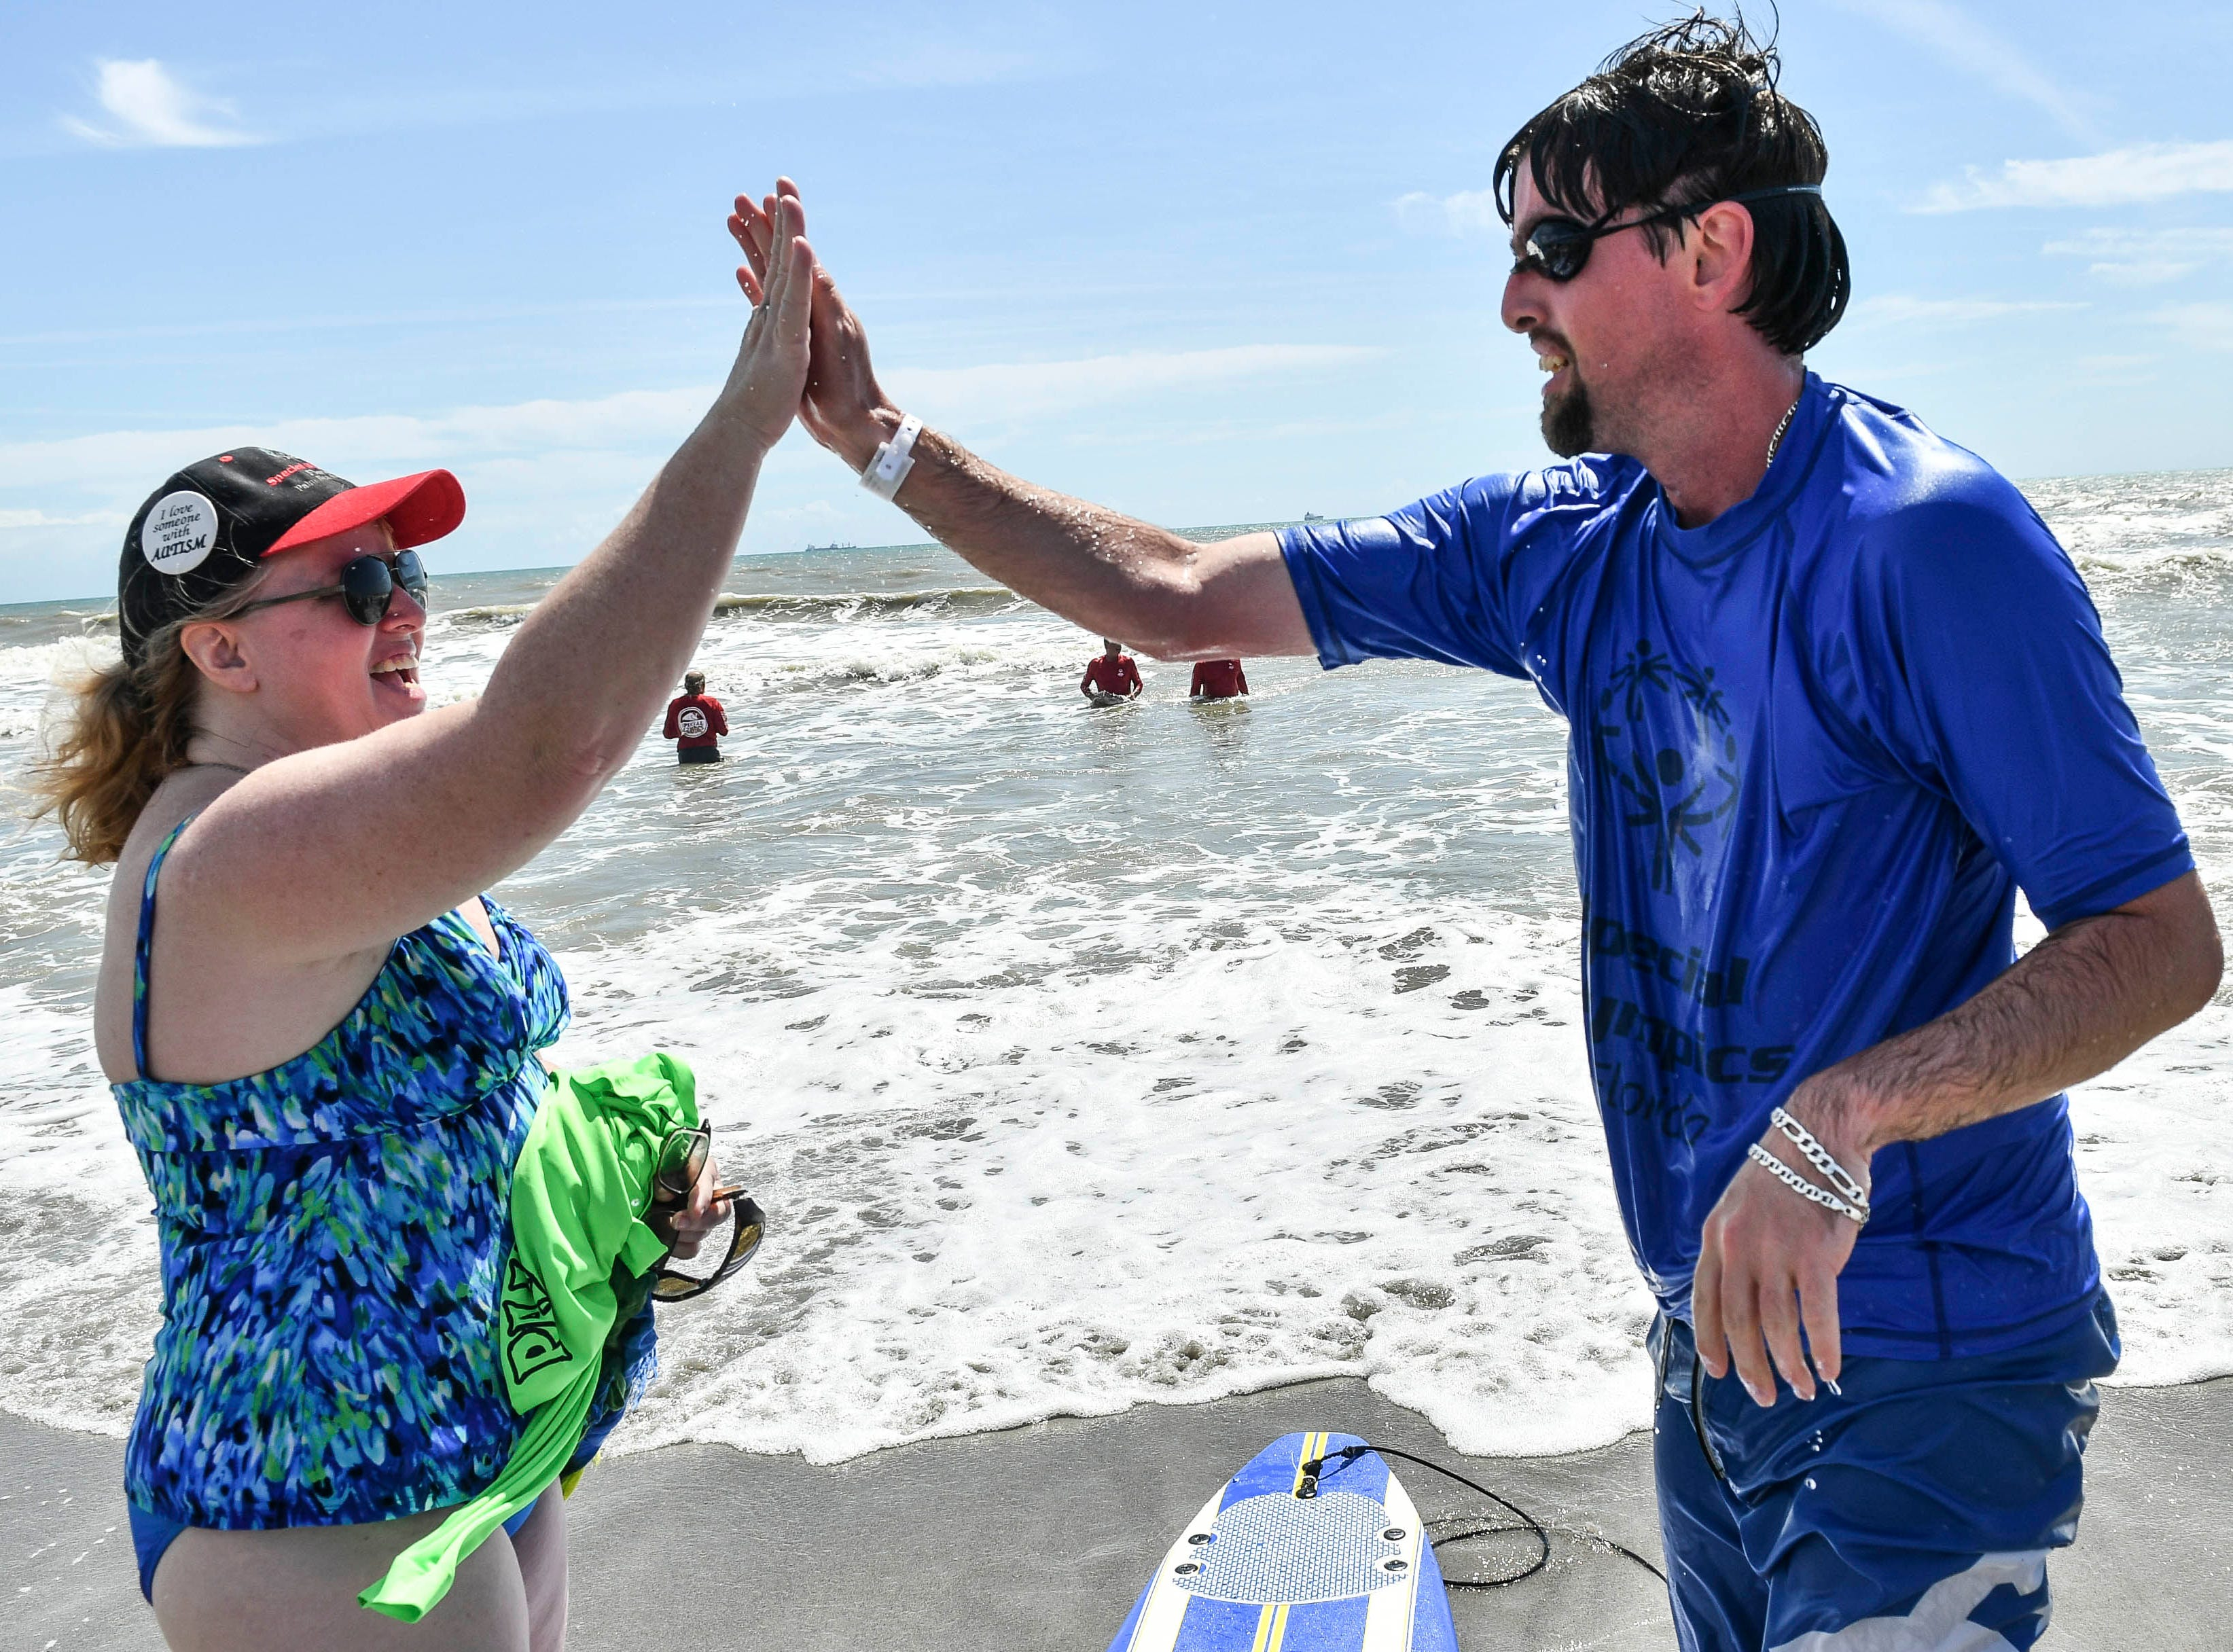 Peggy Hutchison-Padron high fives her son Bryan Padron after he finished competing in the Special Olympic spring surfing festival at Shepard Park.